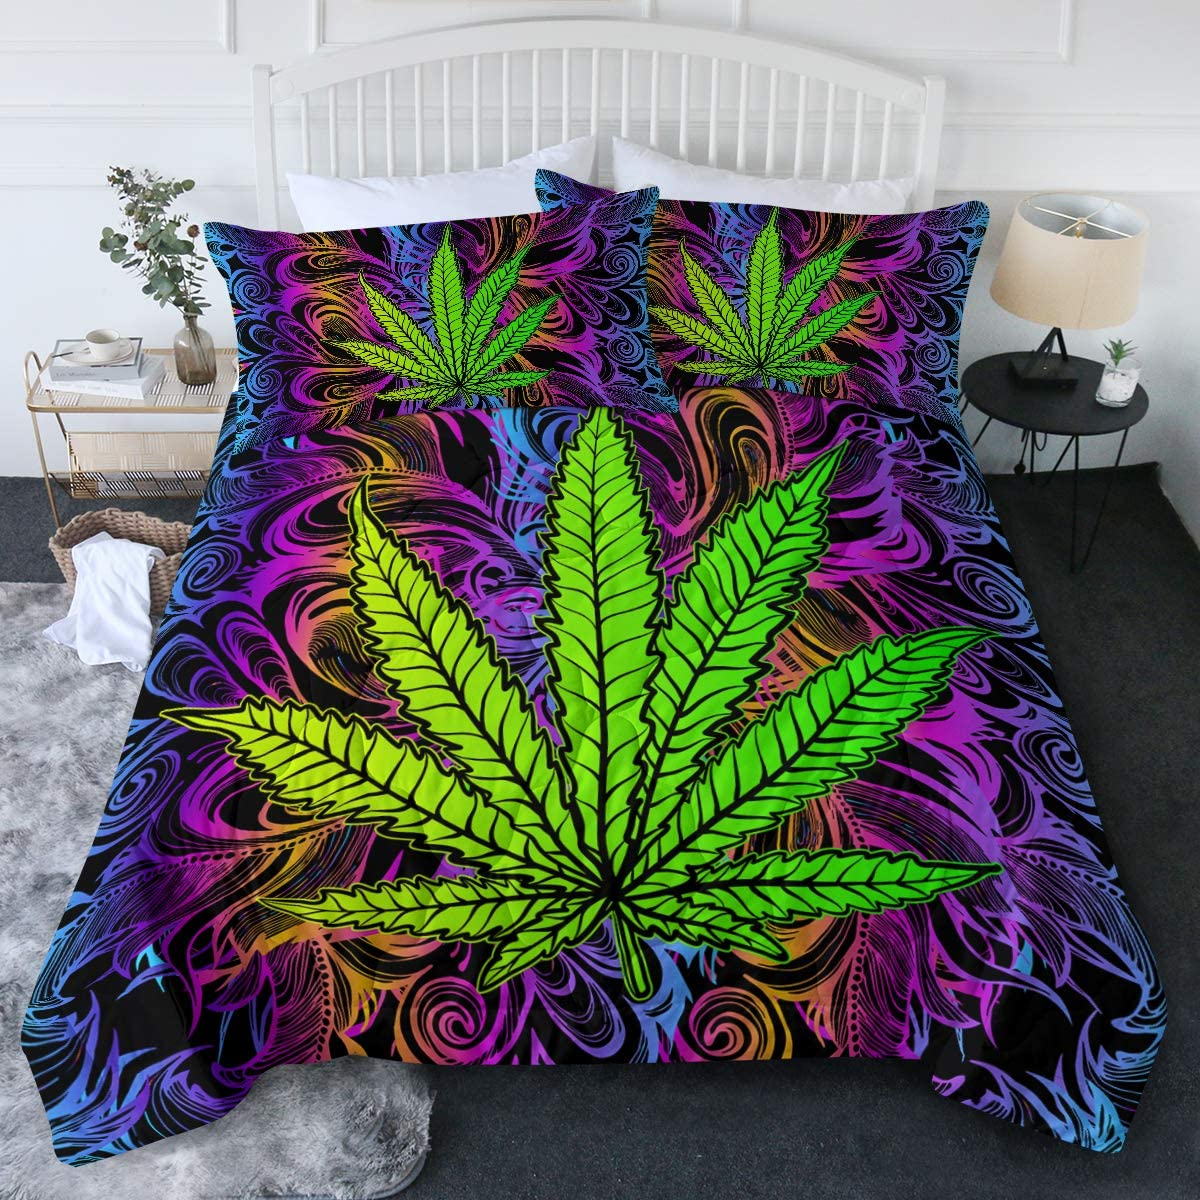 Amazon Com Blessliving Cannabis Leaf Comforter Set 3 Pcs Rainbow Weed Bedding Trippy Leaves Bed Set Bohemian Green Purple Full Queen All Season Bed Comforter Home Kitchen